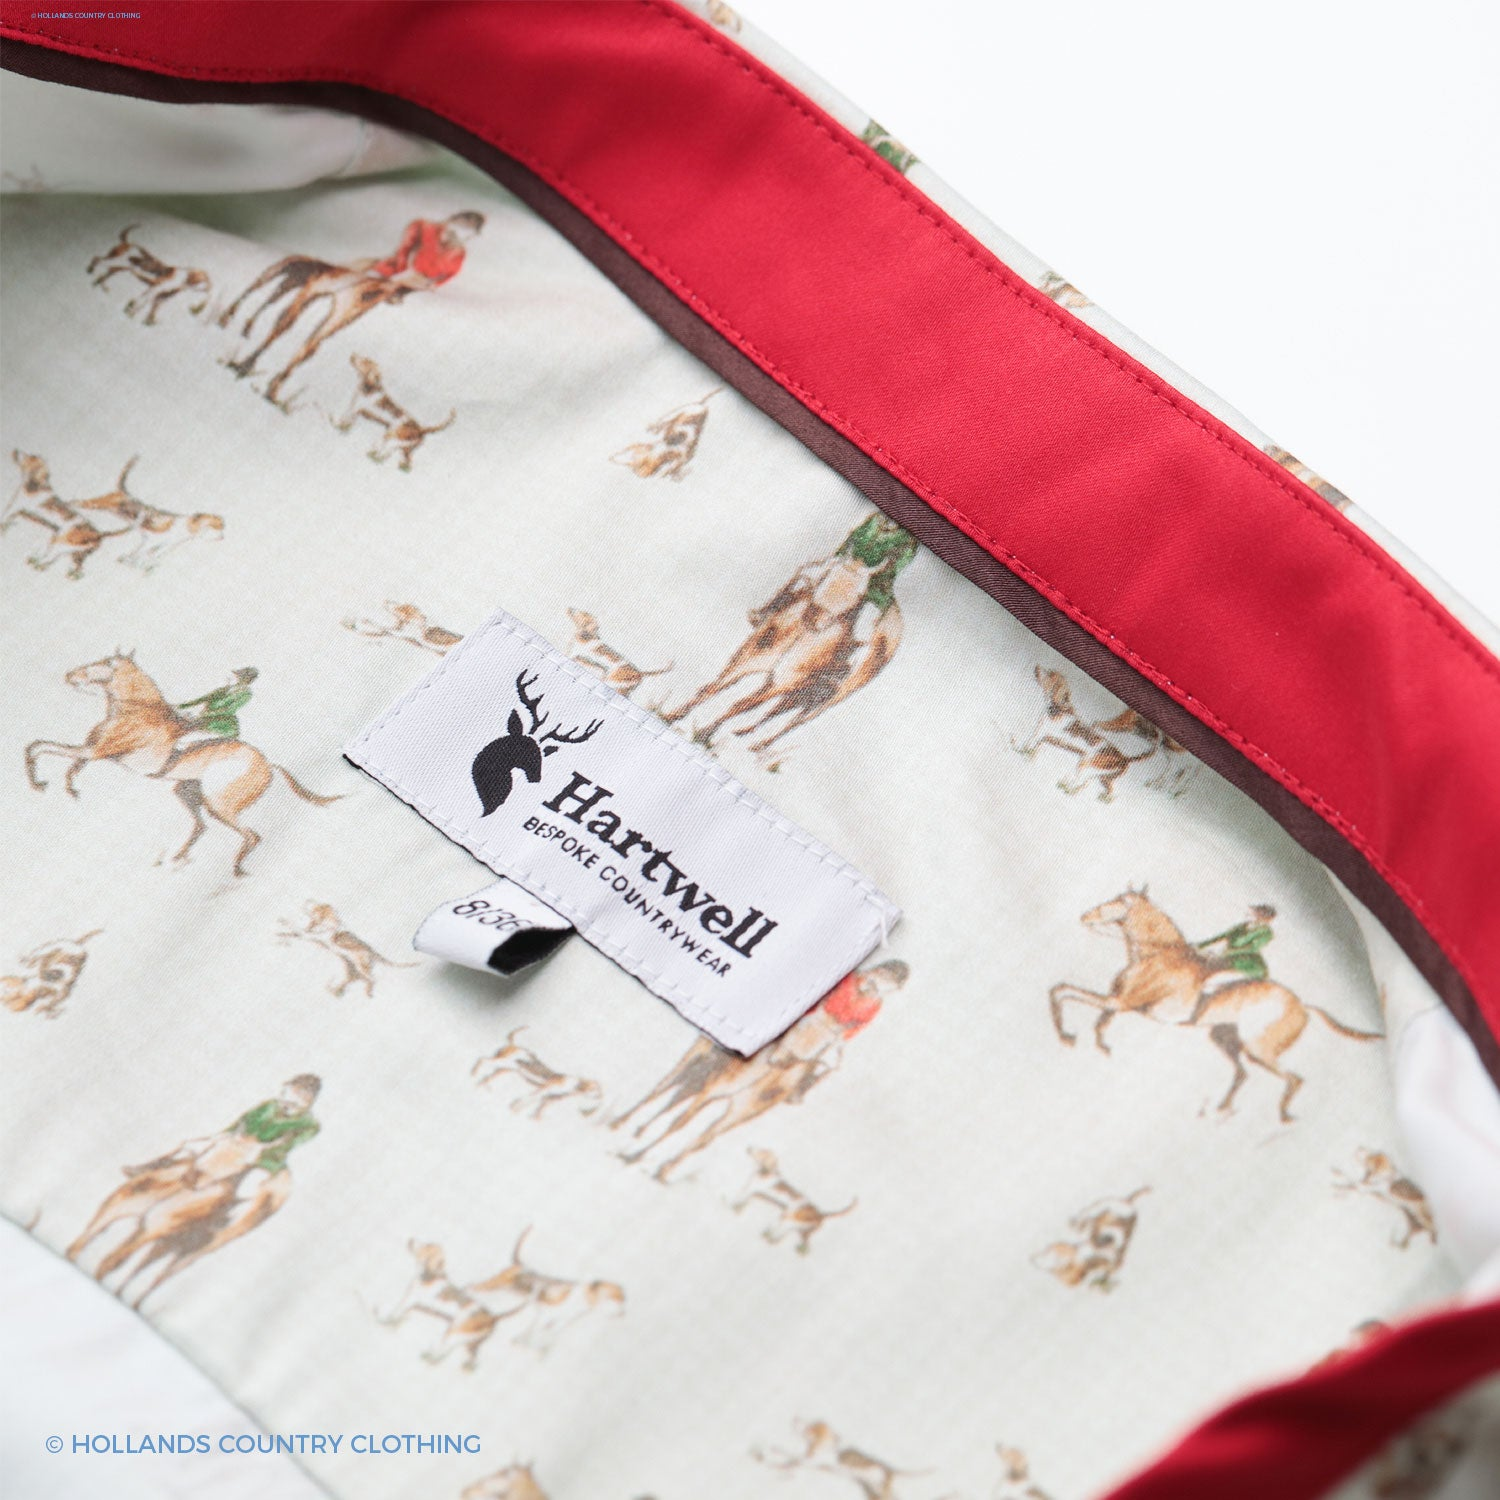 hartwell shirt clooalr detail hounds hunting decoration